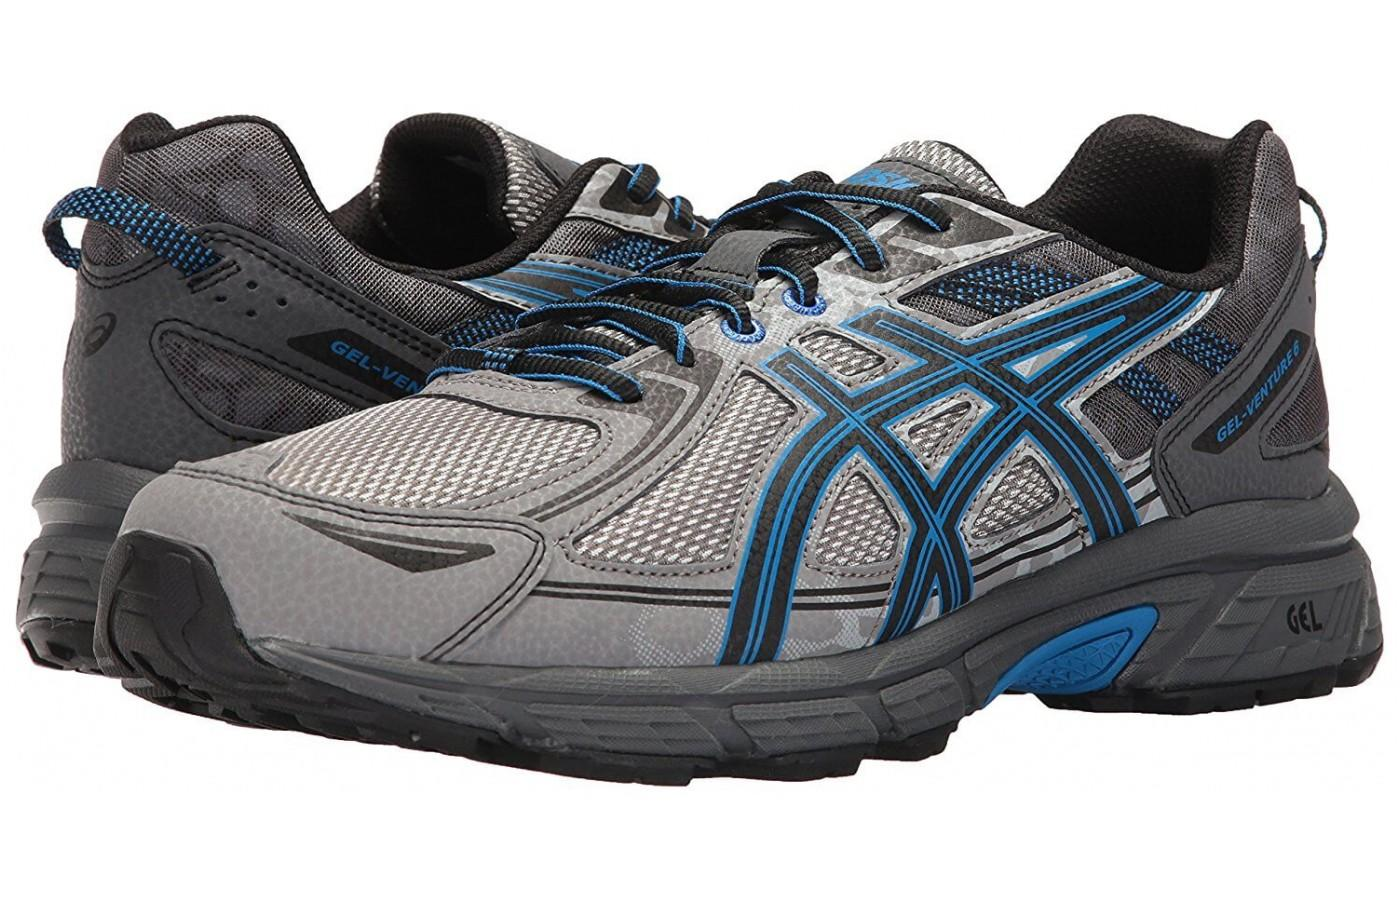 Asics Gel Venture 6 has pleased the majority of runners that have tried it